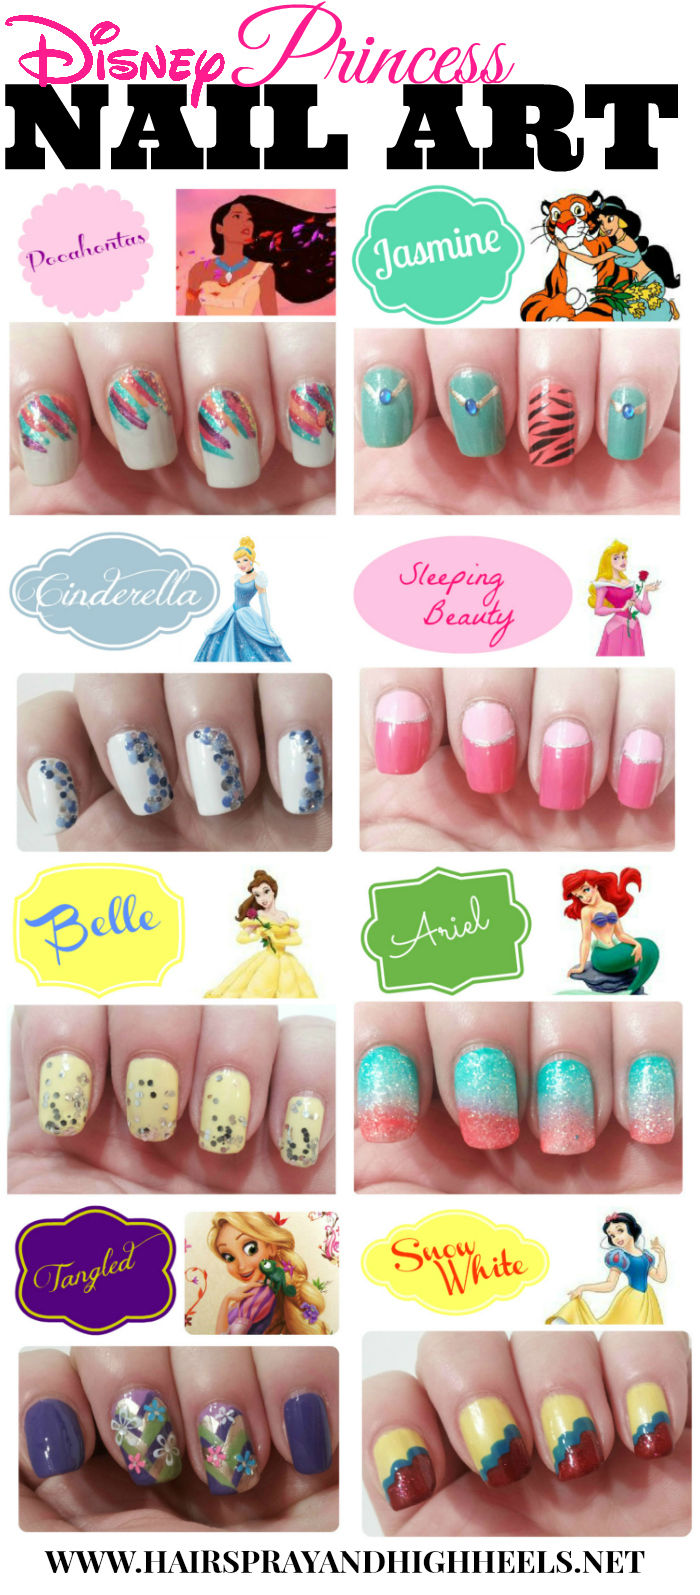 Disney Princess Nail Art Pictures, Photos, and Images for Facebook ...